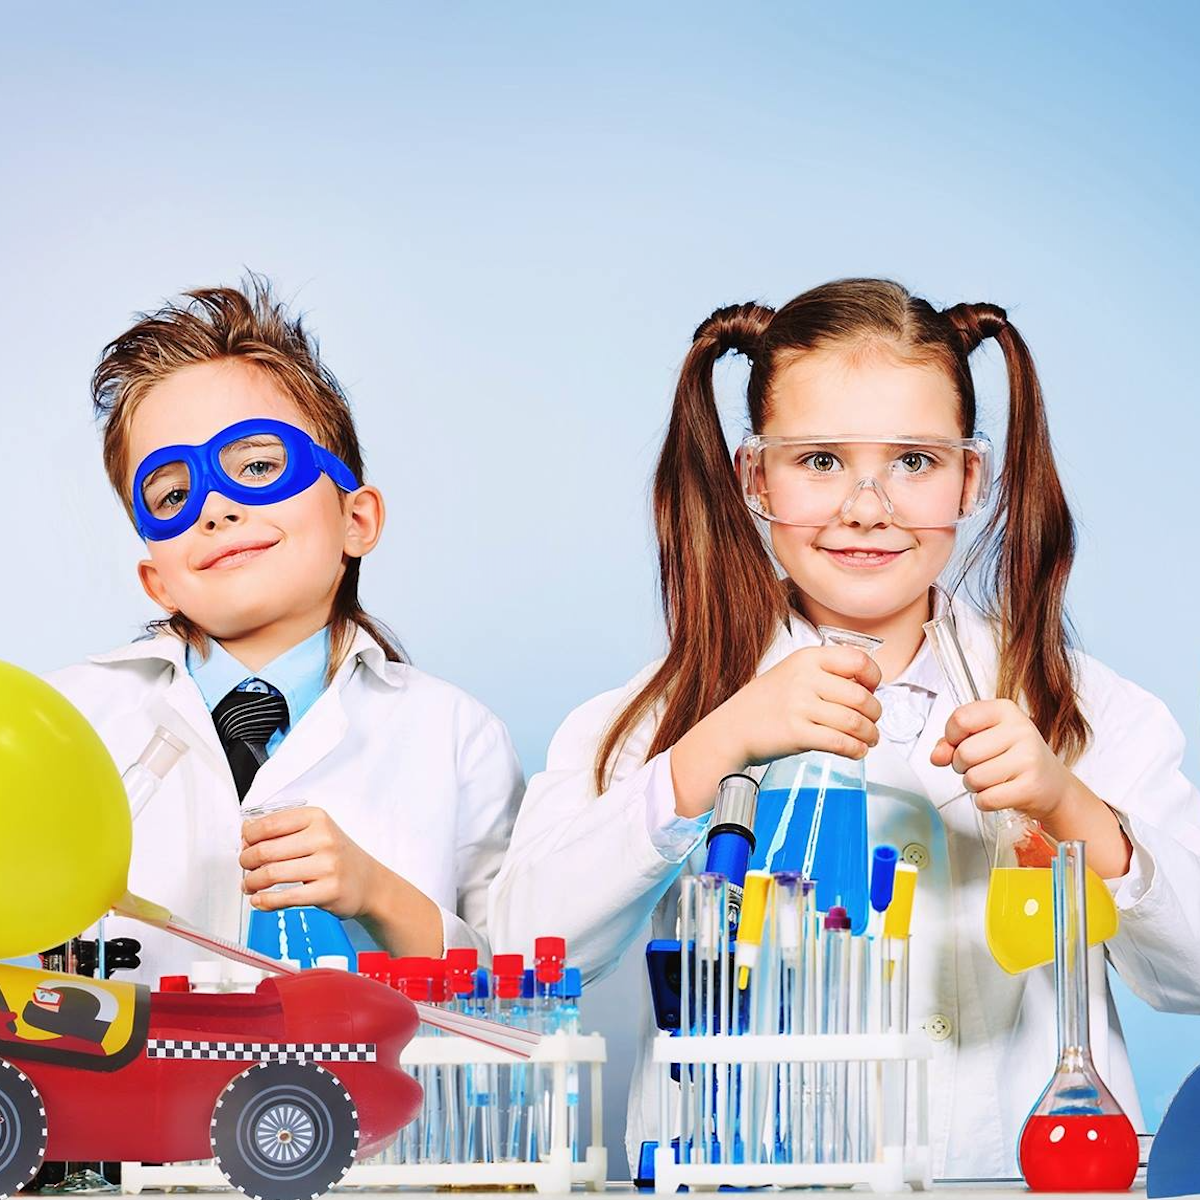 Two children wearing lab coats and playing with a Re-Cycle-Me science activity box